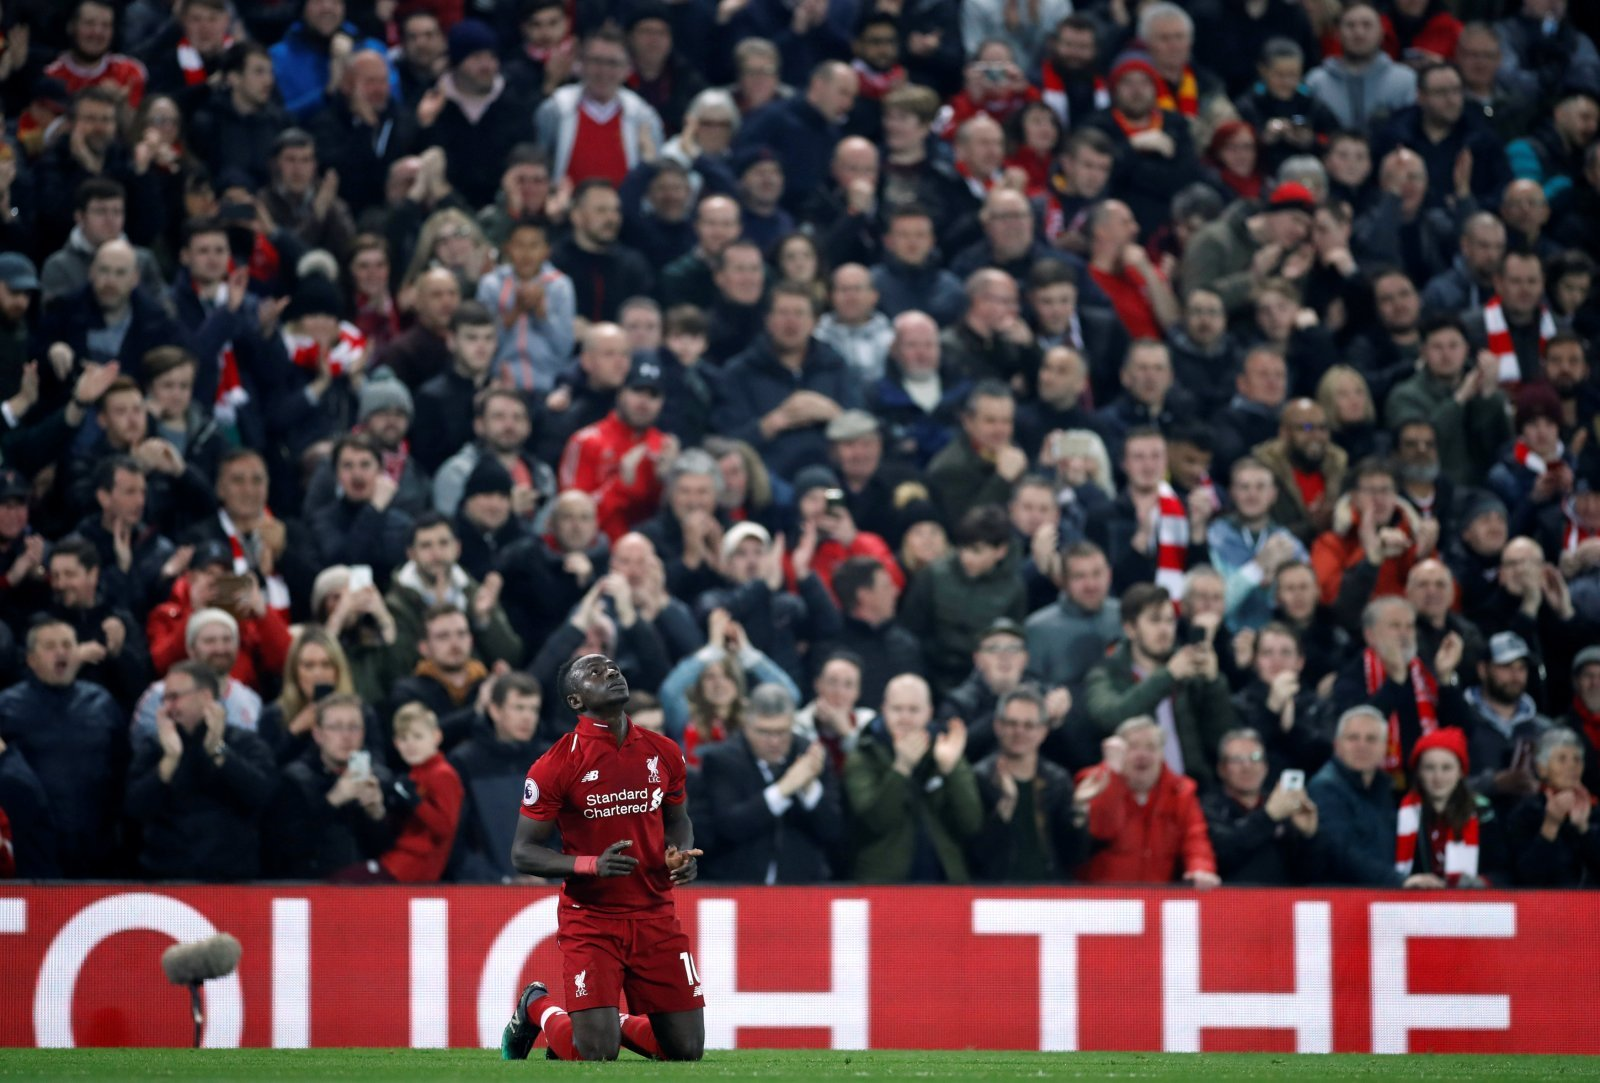 Sadio Mane finally getting the spotlight over Mohamed Salah at Liverpool